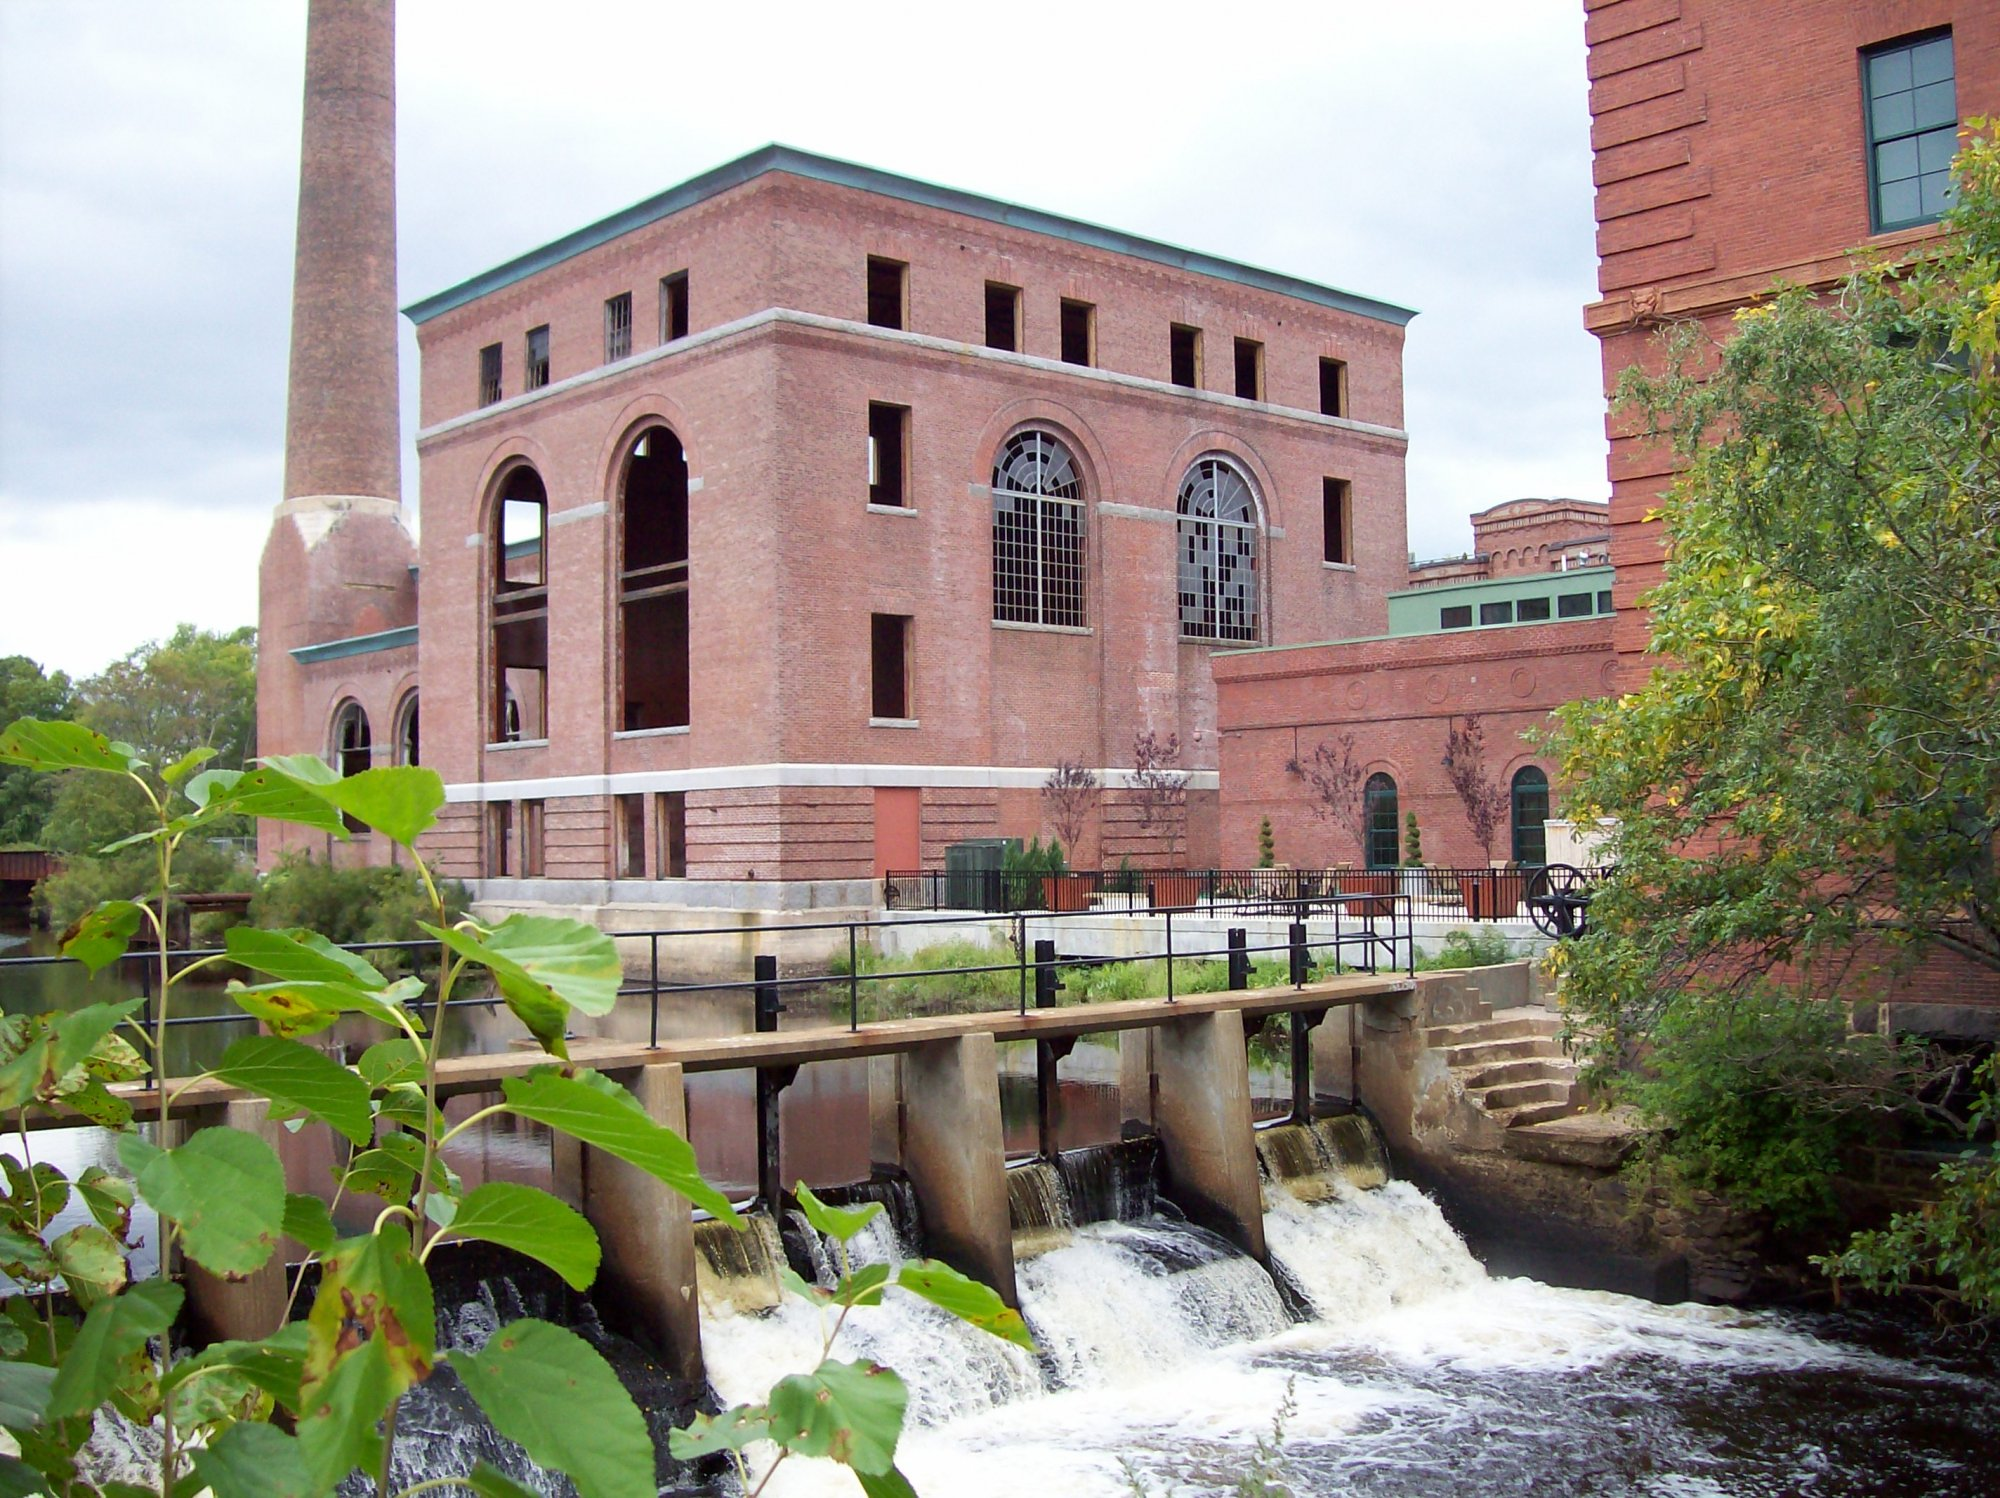 Baker Chocolate power house and Lower Mills Dam